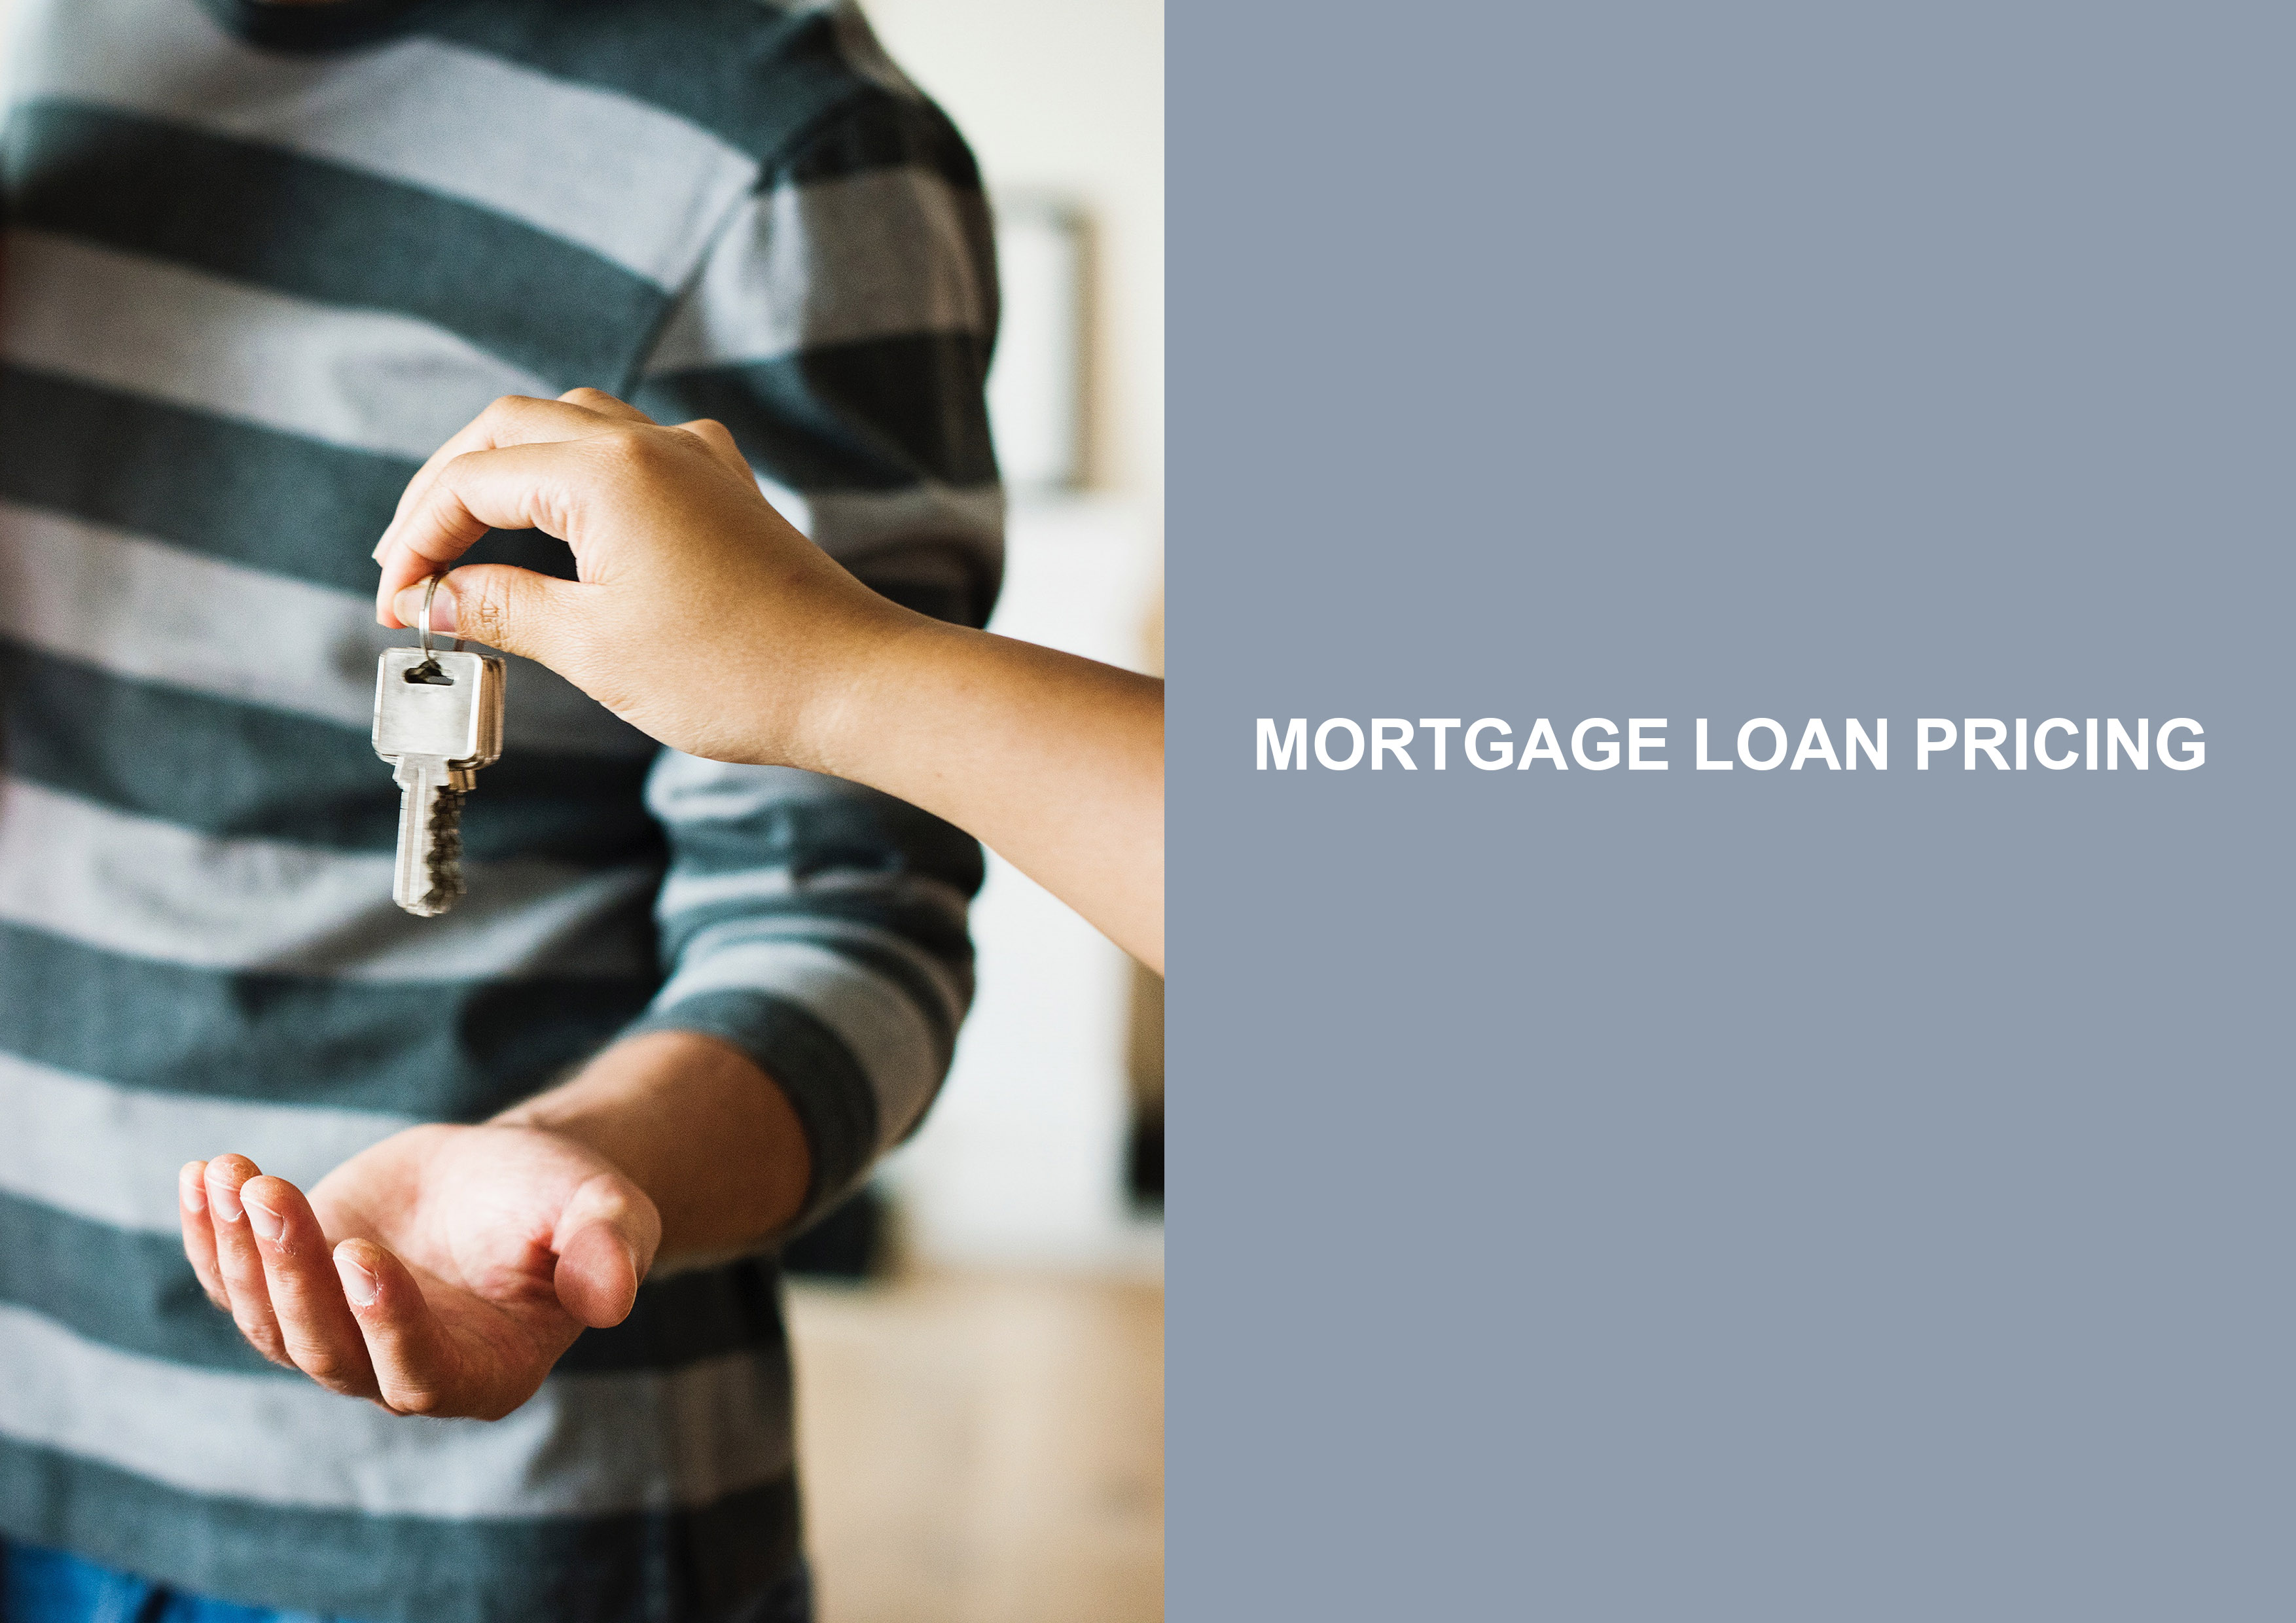 Mortgage Loan Pricing